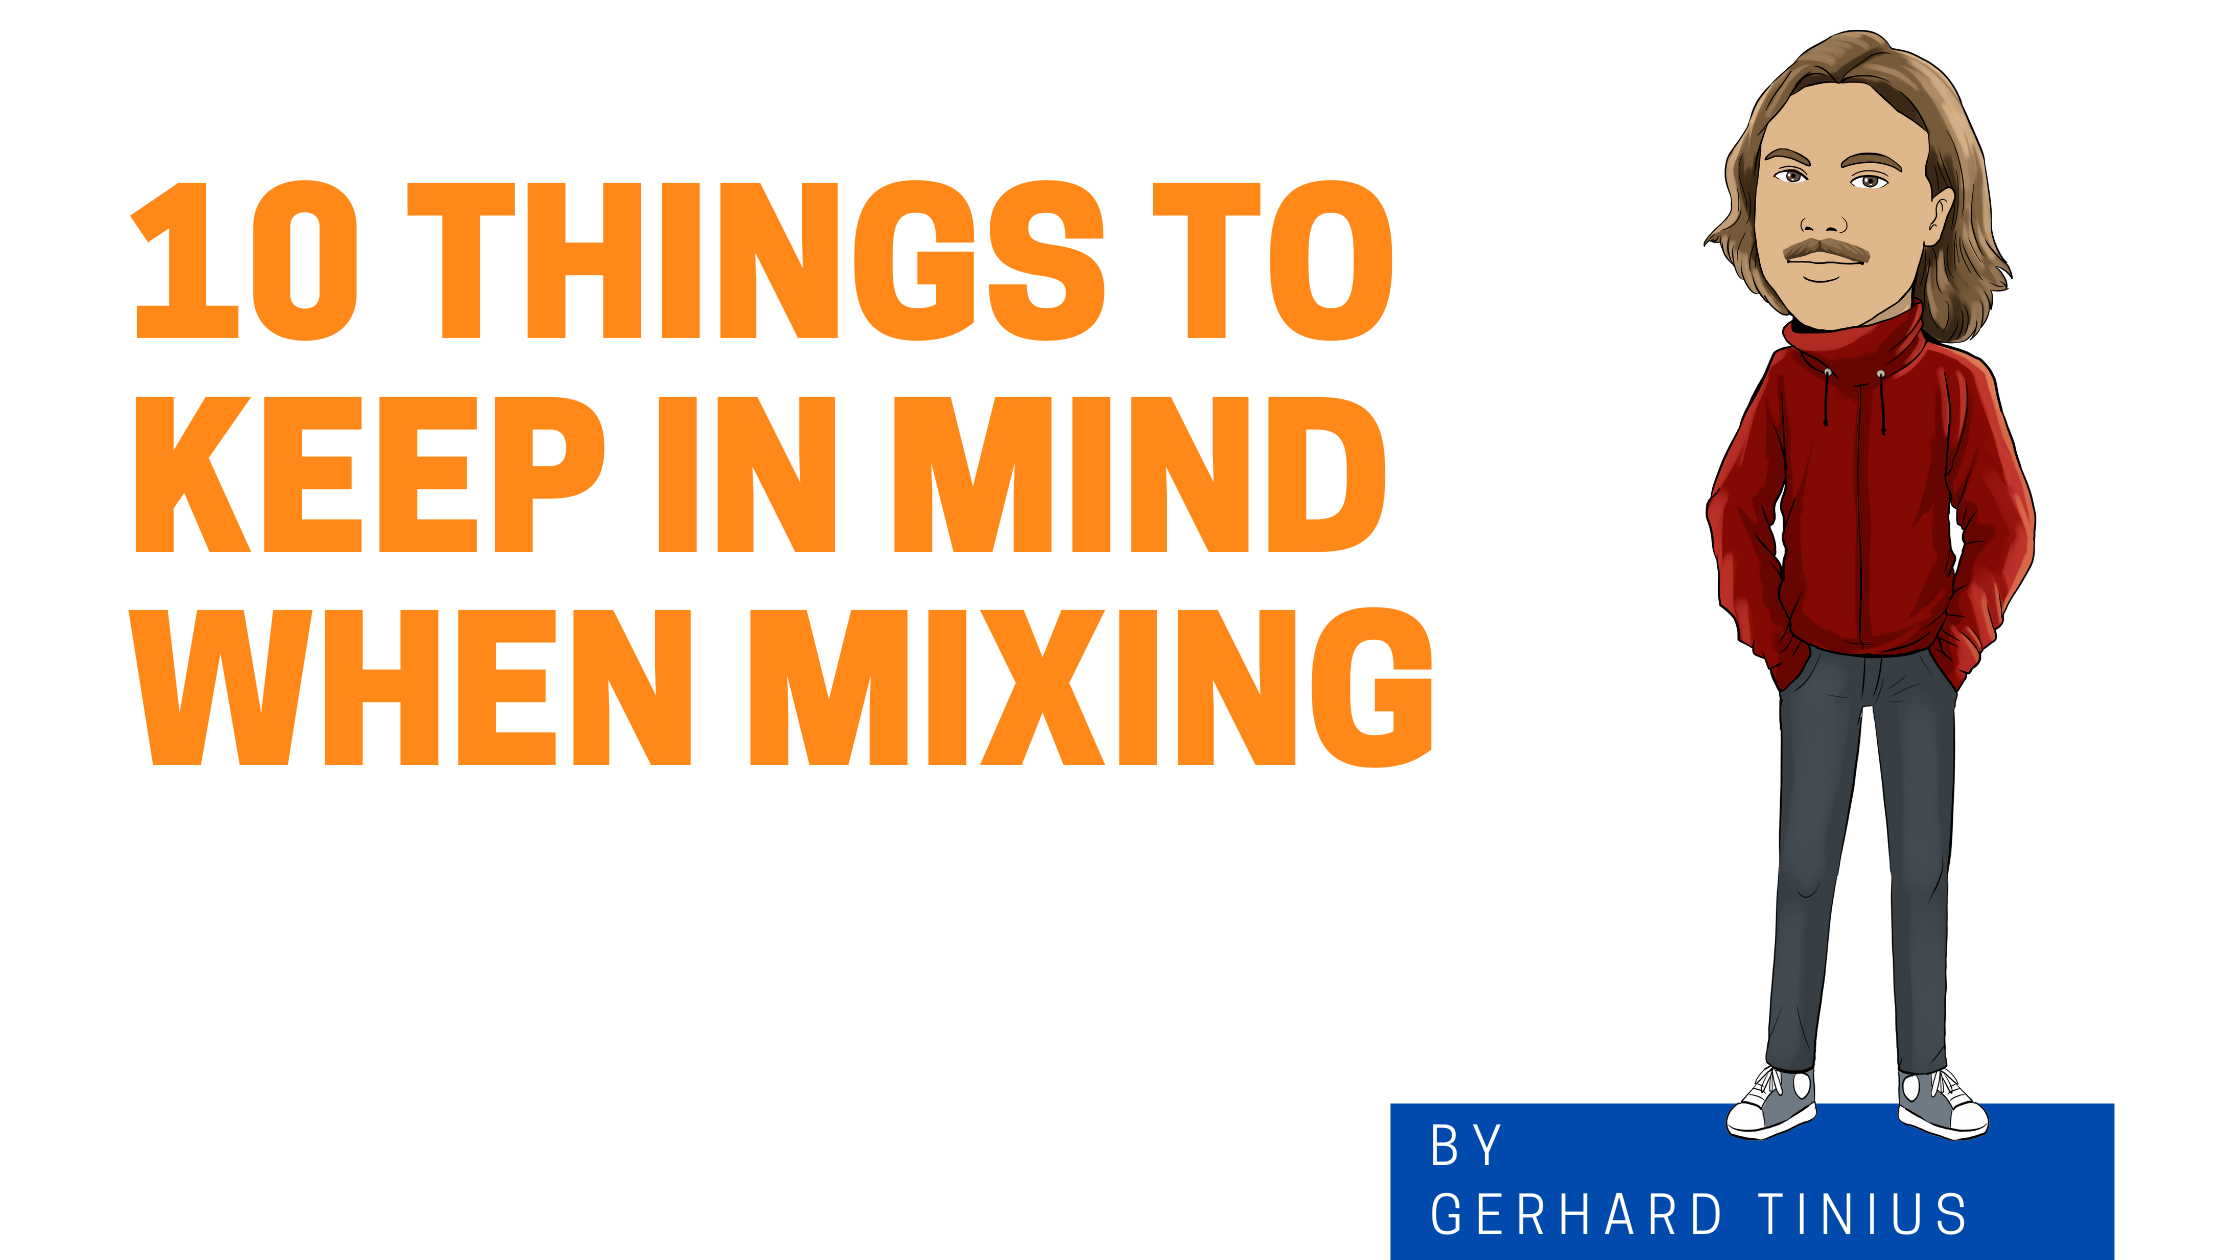 10 things to keep in mind when mixing with cartoon version of Gerhard